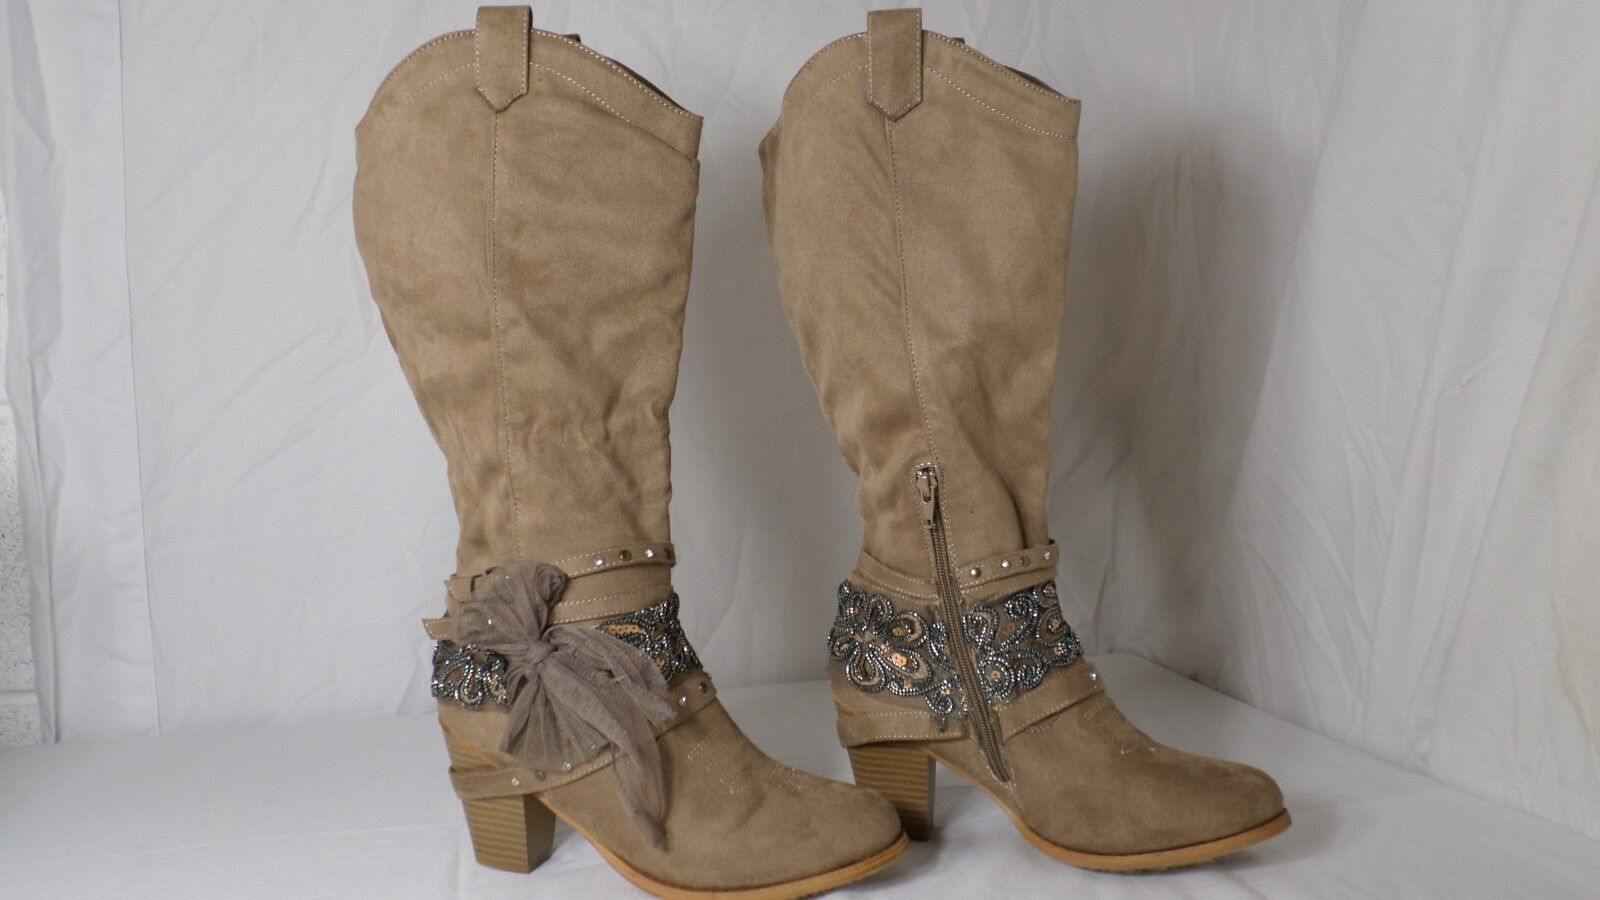 Pierre Dumas 'Denny-9' Taupe Faux Suede Western Knee High Boot Women Size 9 M